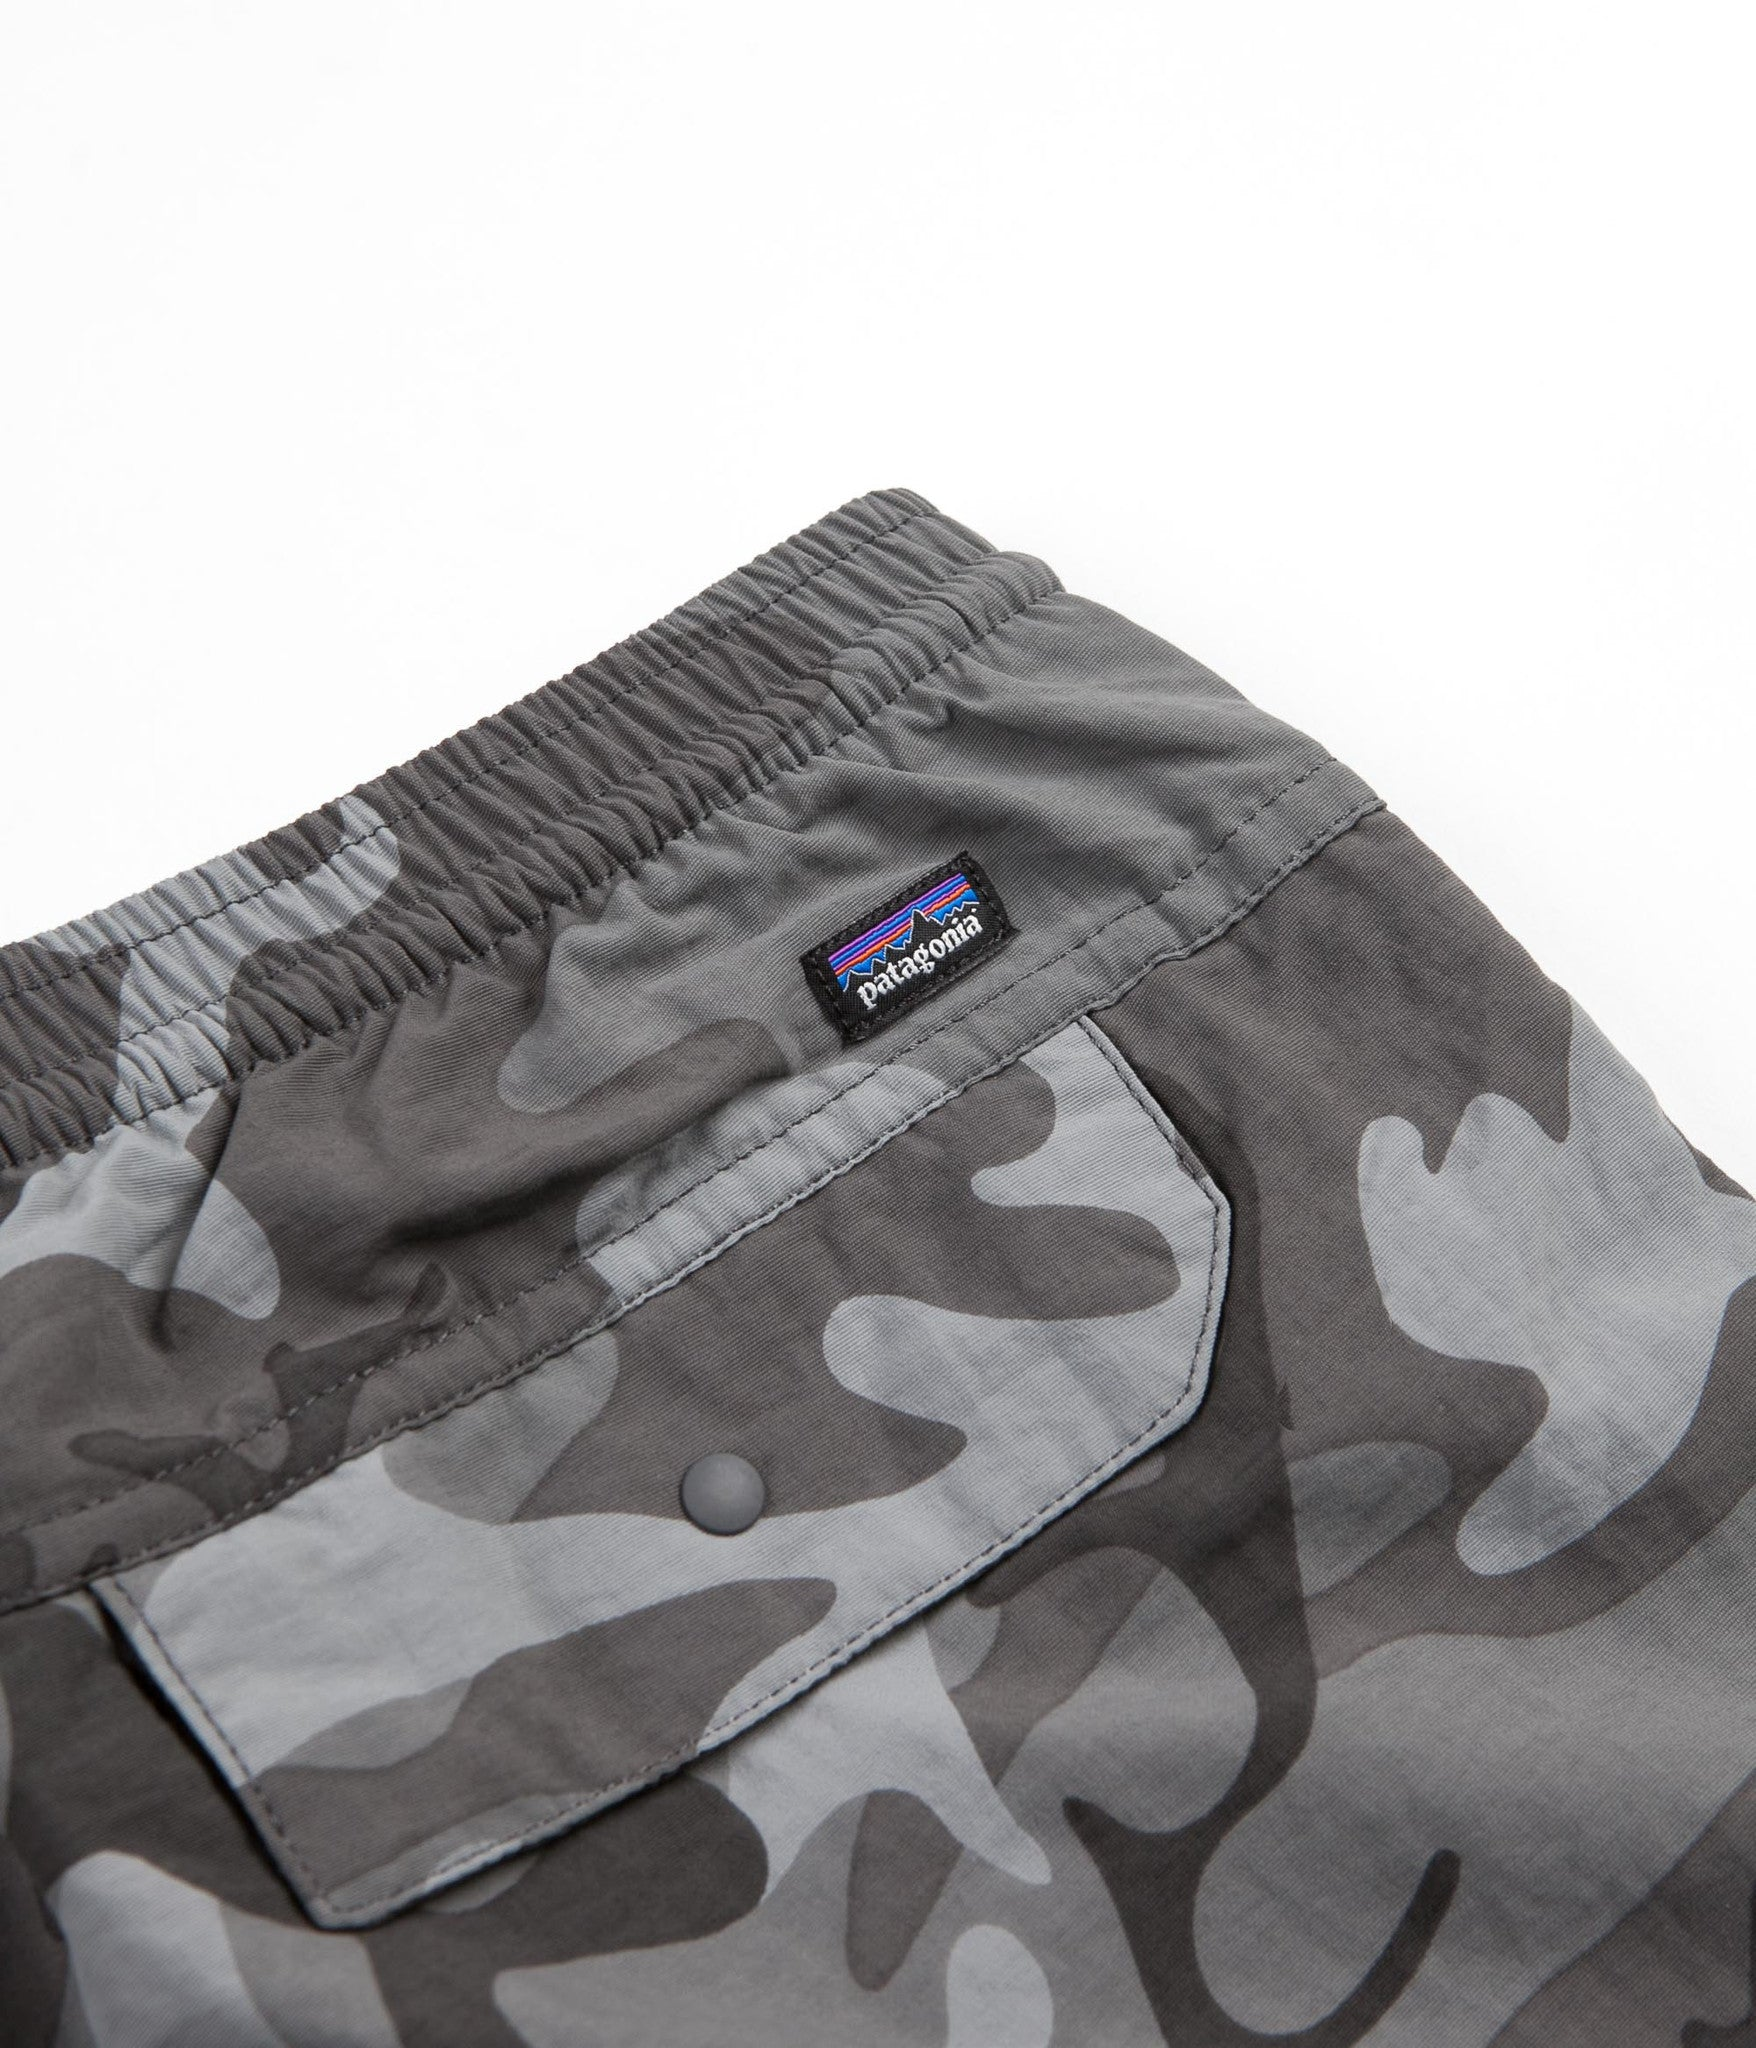 Patagonia Baggies Pants - Forest Camo / Forge Grey